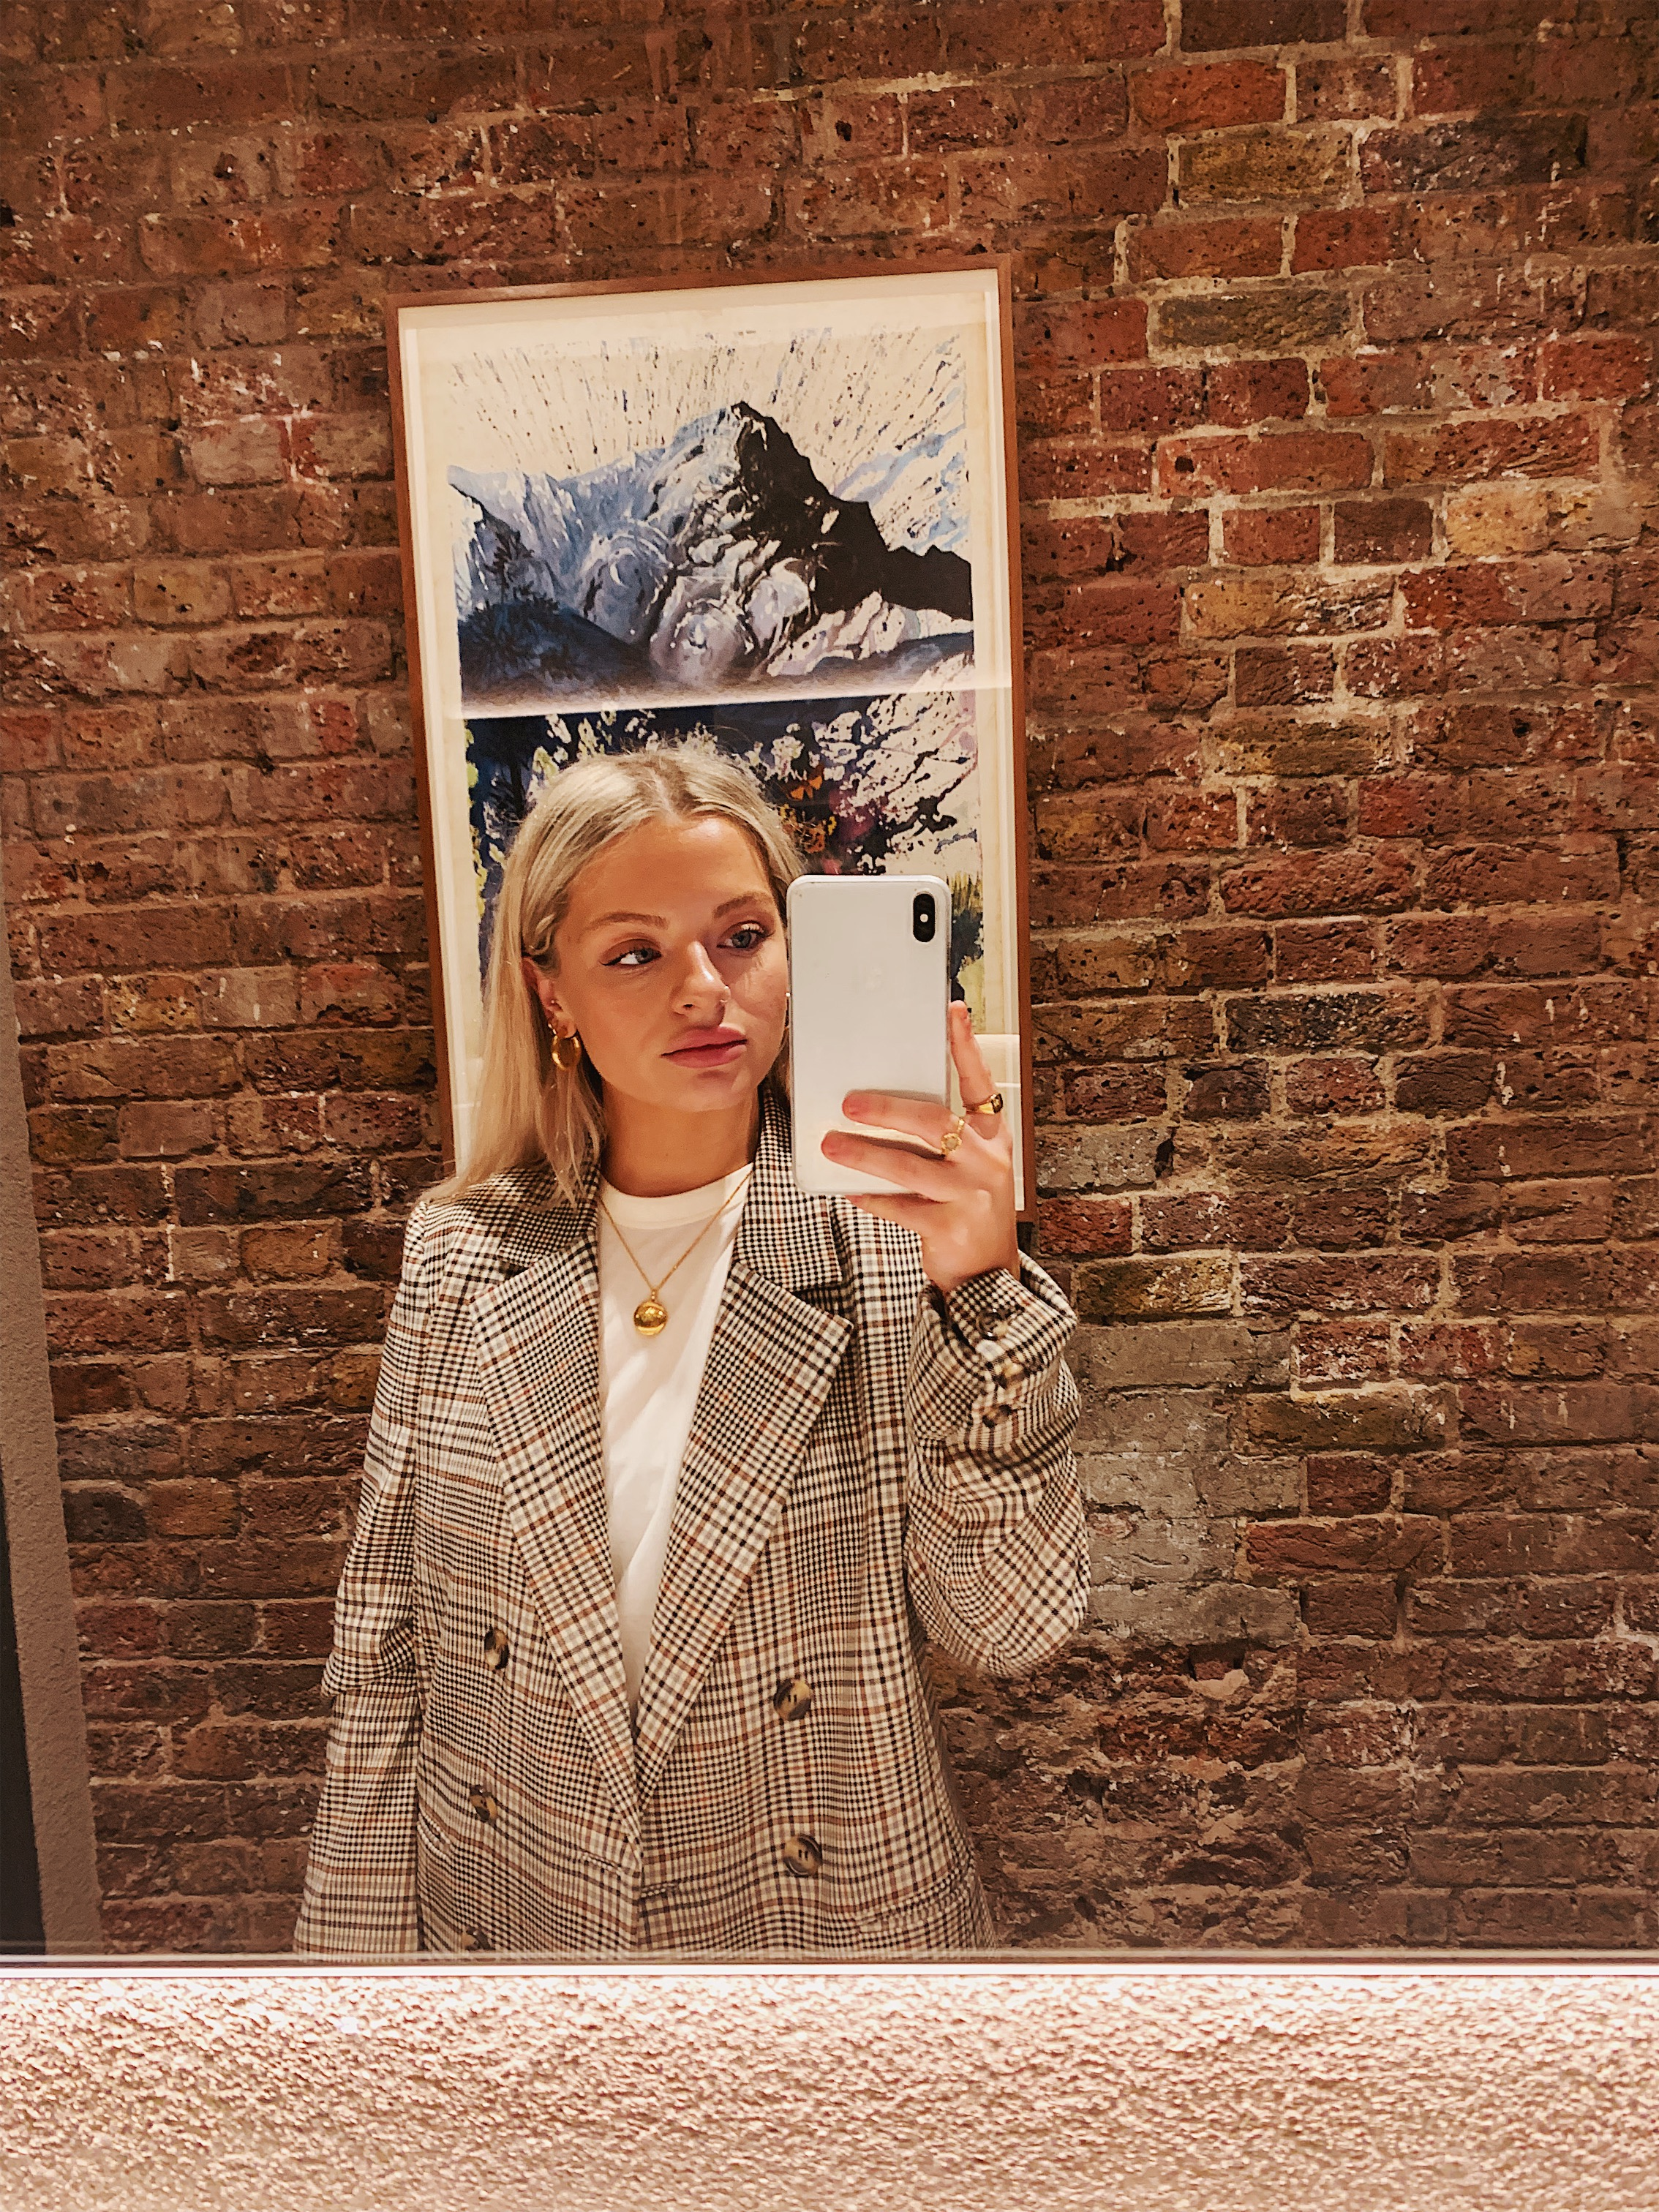 Mirror selfie in cafe toilets wearing check blazer